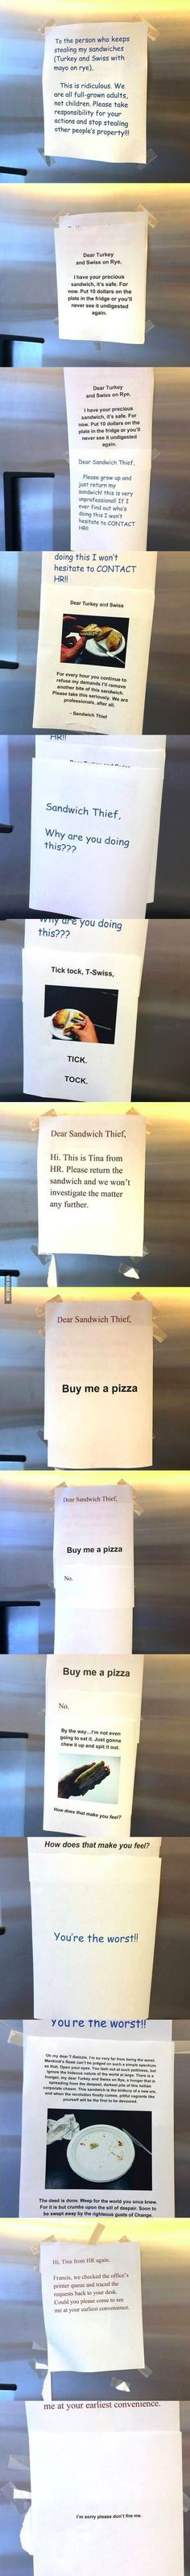 This Guy Kept Taking Co-Workers Sandwiches What Happens Next Is Hilarious. funny jokes story lol funny quote funny quotes funny sayings joke hilarious humor prank stories office pranks funny jokes pranks Lol, Haha Funny, Stupid Funny, Funny Cute, Funny Memes, Jokes, Funny Work, Funny Stuff, Funny Sayings